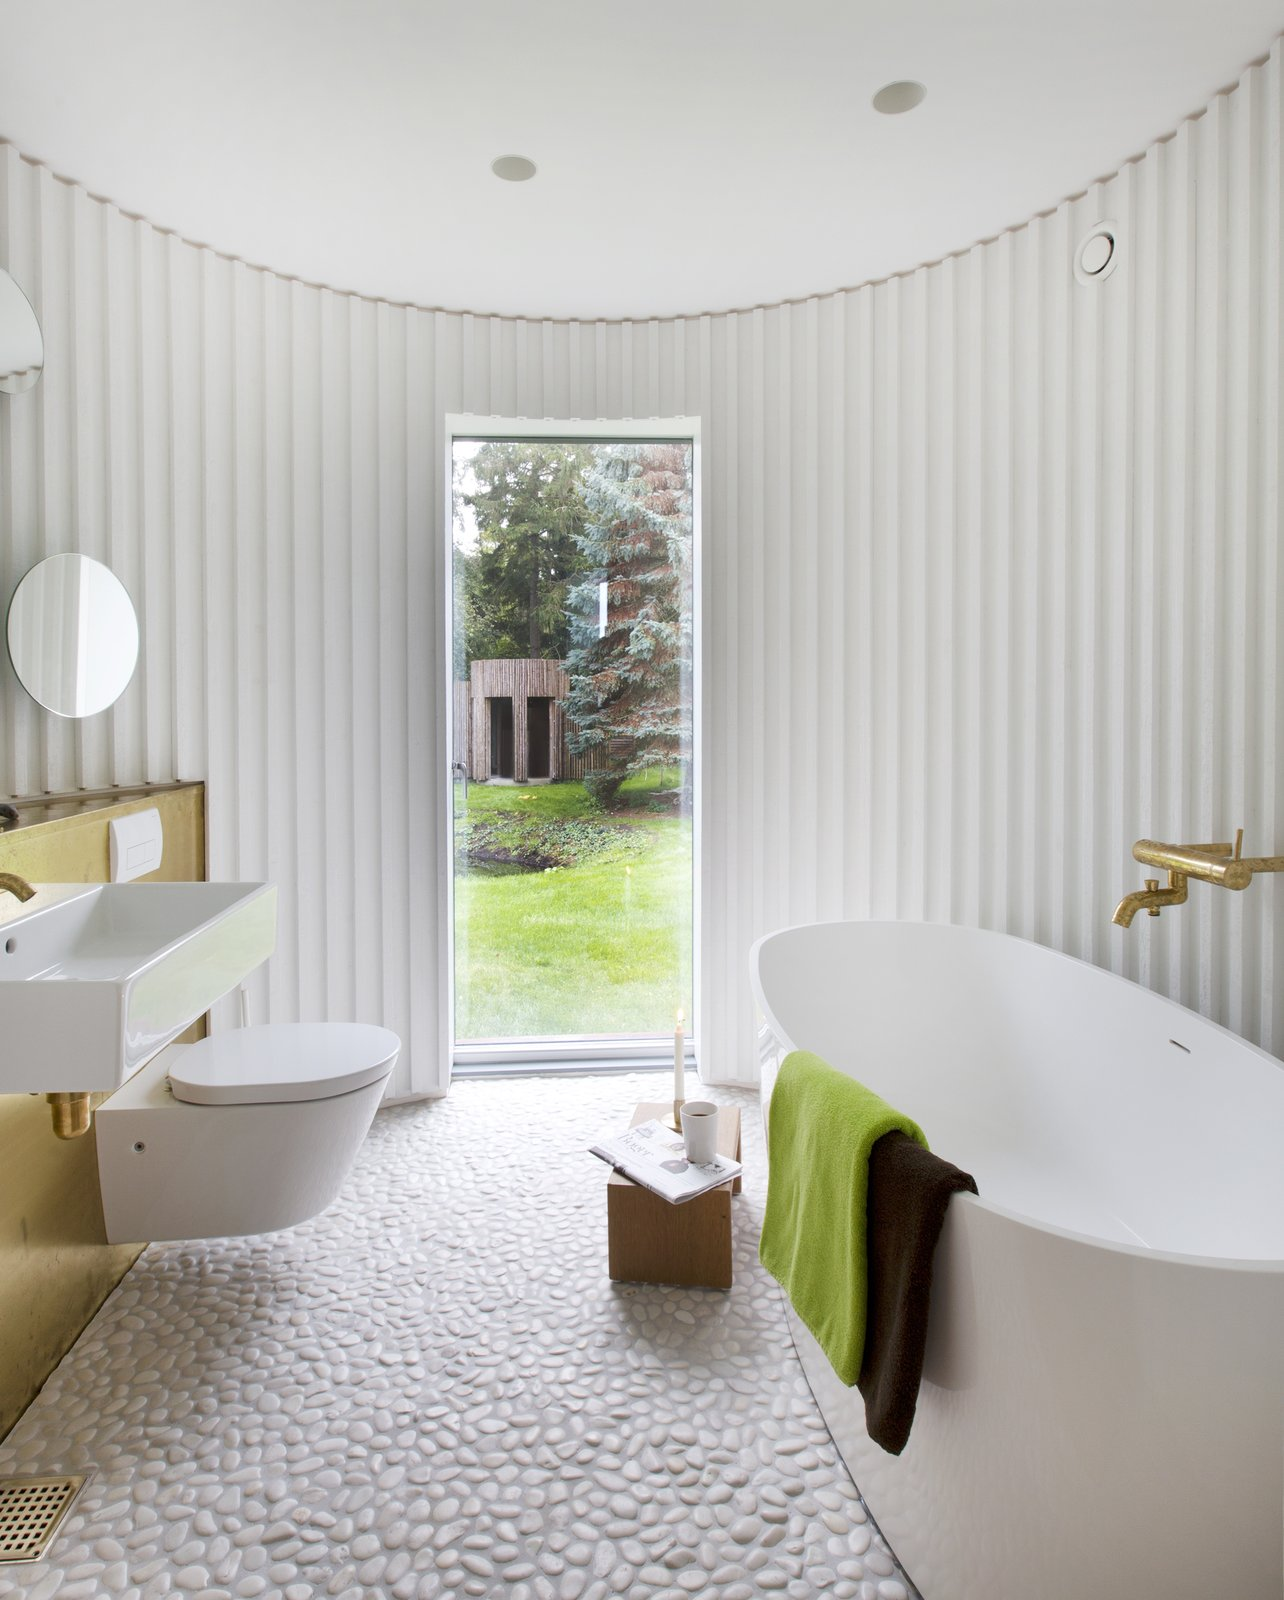 Bath Room, Wall Mount Sink, Freestanding Tub, Soaking Tub, Recessed Lighting, One Piece Toilet, and Metal Counter  Photo 11 of 15 in Stay in This Danish Vacation Home Made Up of 9 Log-Clad Cylinders